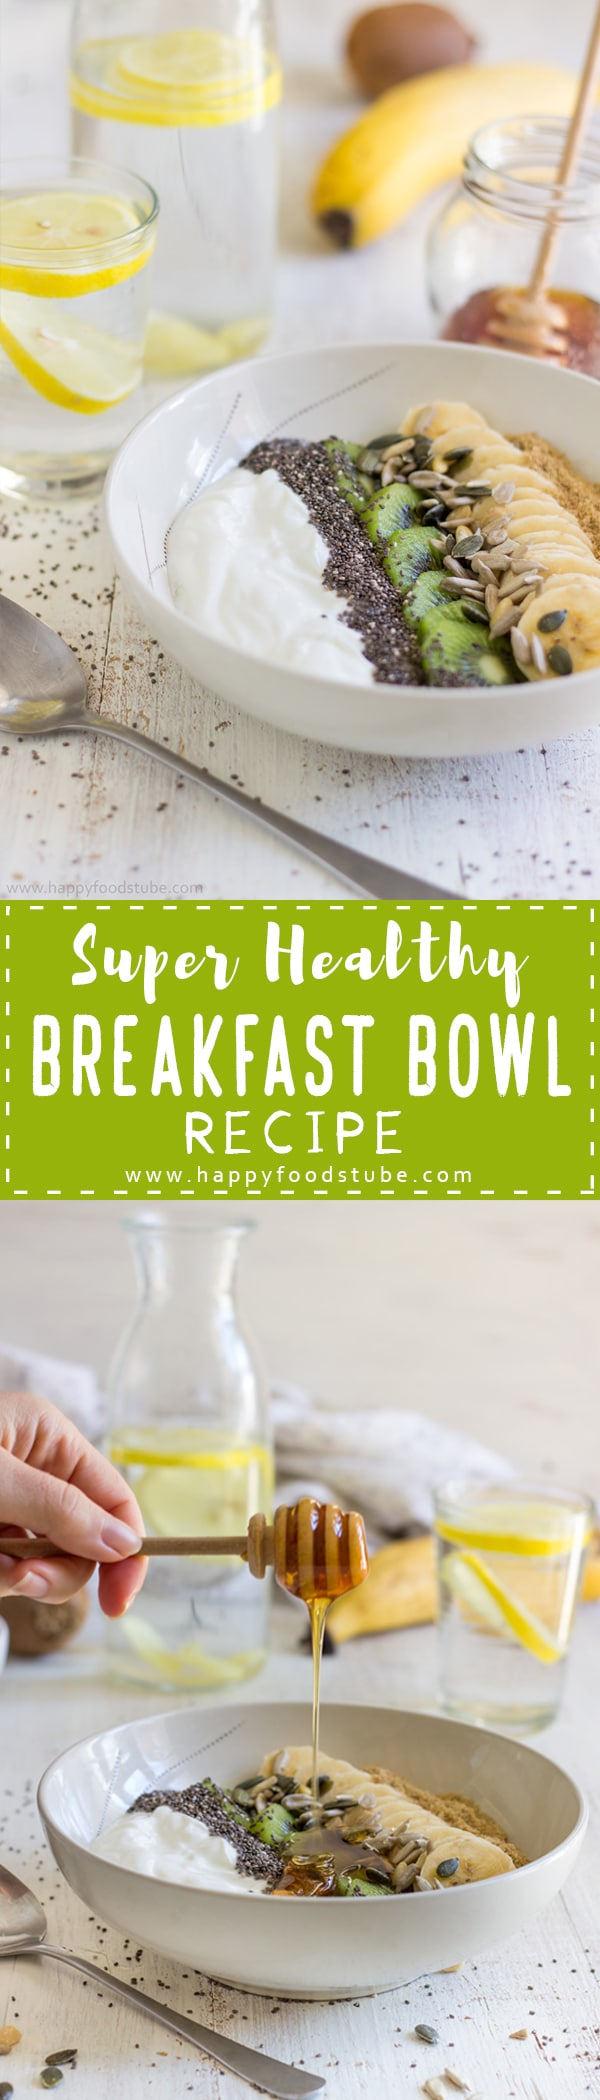 Super Healthy Breakfast Bowl - Start off your day with this nutritious meal ready in less than 5-minutes. Easy breakfast with yogurt, fruits and seeds